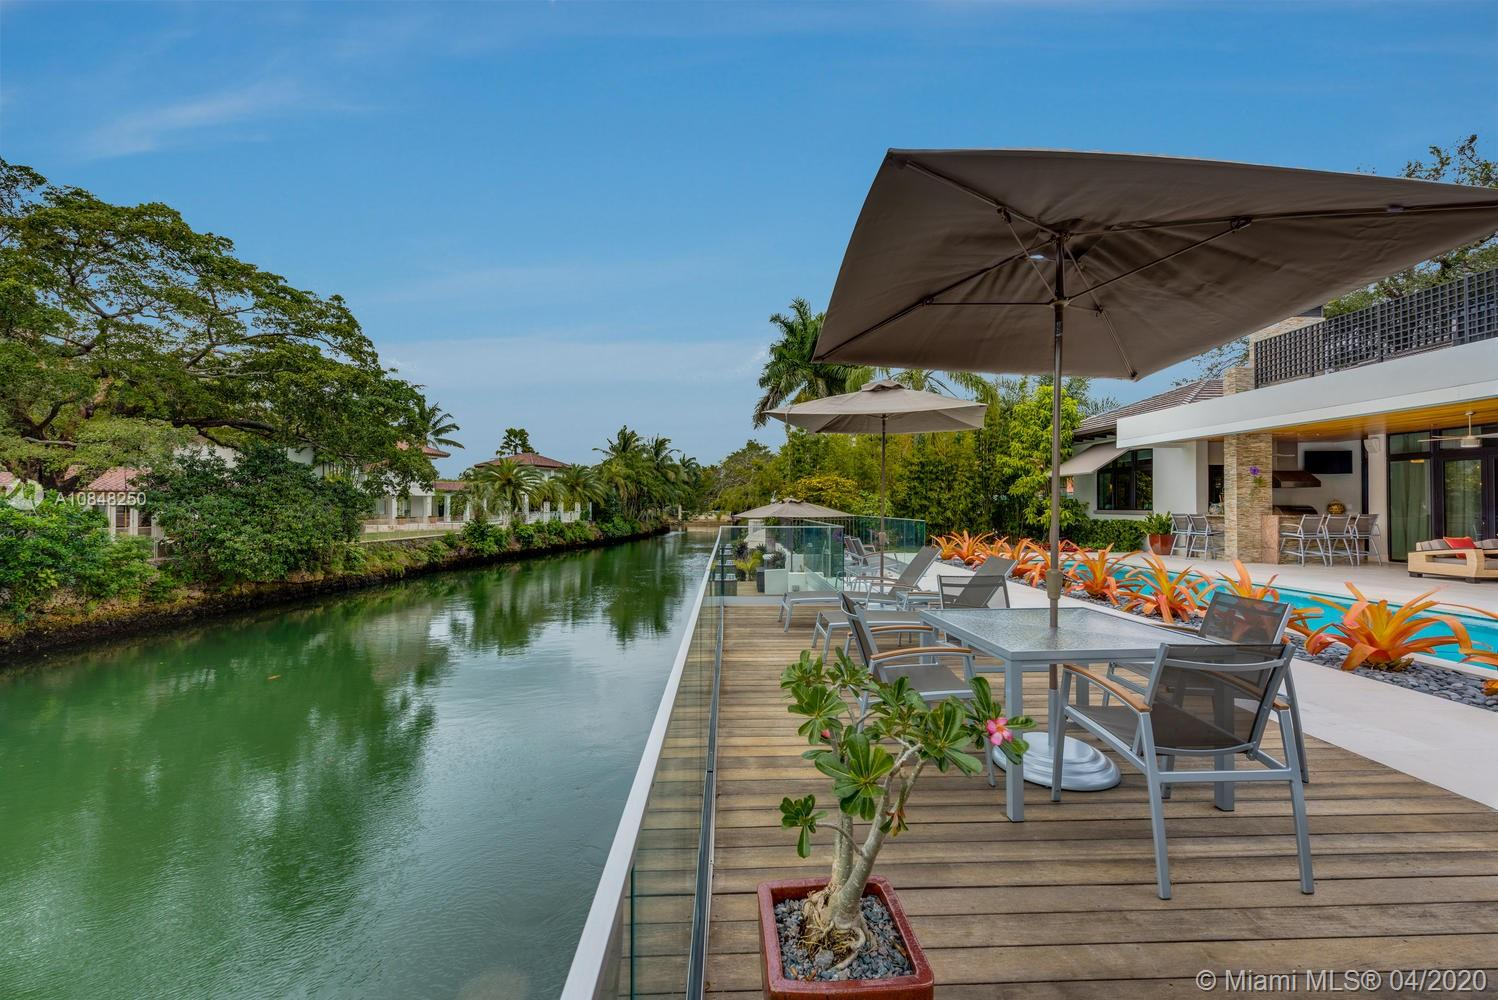 Beautifully designed Coral Gables waterfront home by award winning Ramon Pacheco. This exquisite residence was built in 2014 and features Cantilevered boat dock for a 36ft boat, heated & salt water pool and spa, large terrace with fully built out summer kitchen and surround sound system makes for amazing outside entertainment! Interior features includes custom built kitchen with built in TV,  soaring 14 ft ceilings and marble floors throughout. The Master suite is light-filled with views of the garden, canal and pool area, featuring a very large master bathroom with double sink with quartz counter tops, double shower, double closet and a morning kitchen with refrigerator. Landscape & irrigation system designed by renowned landscape and golf course Architect. Virtual tour available!